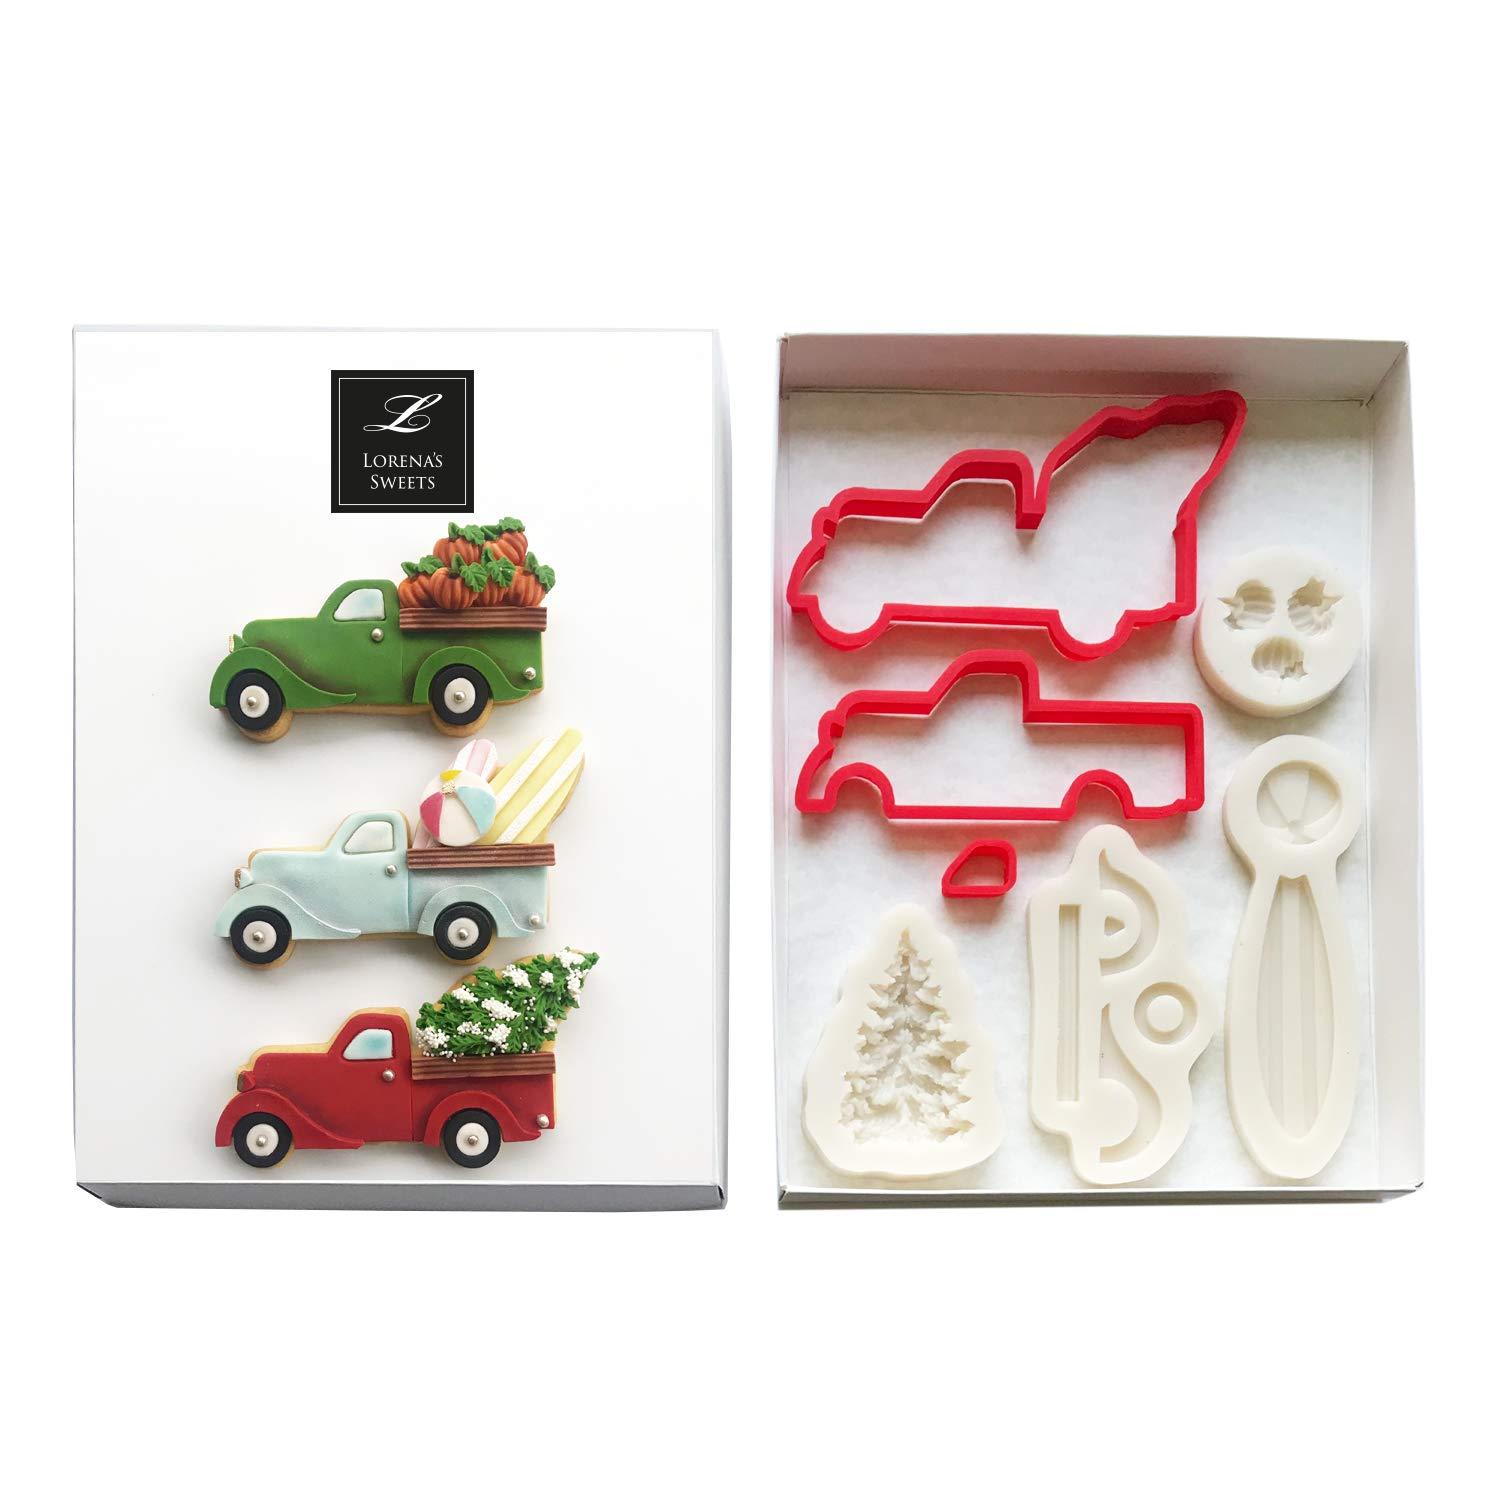 Lorena´s Sweet Fondant Cookie Cutter Kit Pickup Truck by Lorena´s Sweets